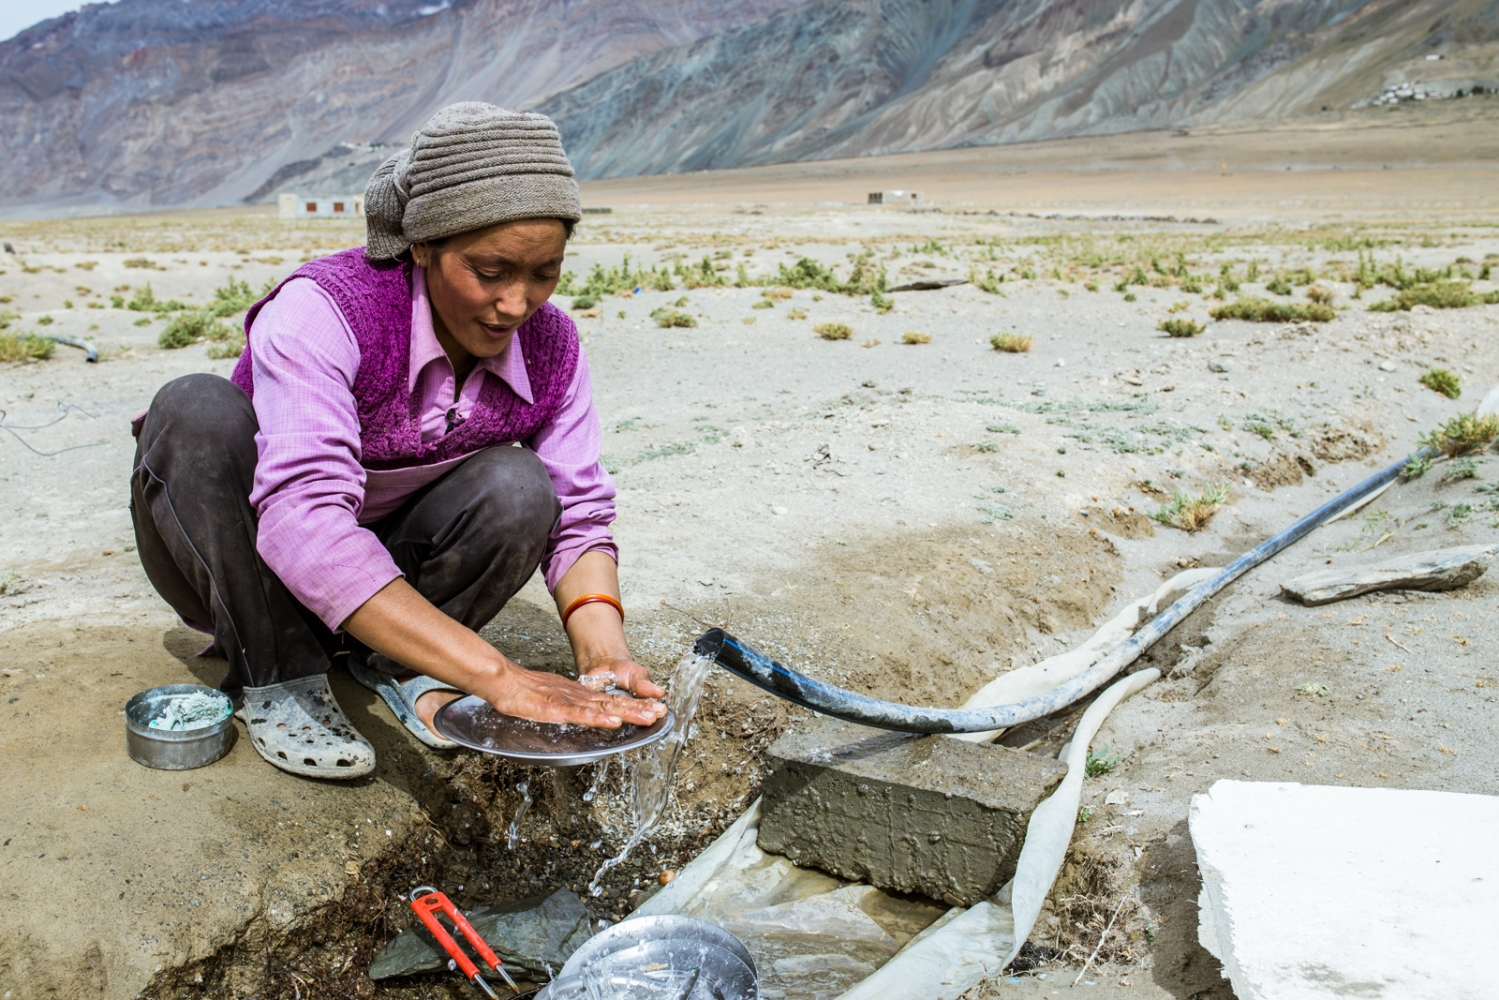 Thukjay Dolma, a resident of Lower Kumik, washes dishes under a pipe that brings water down from Kumik. Thukjay, put all her family's meagresavings into moving and building a new home. Once again, without water and savings, they are unsure of what the future will bring them.